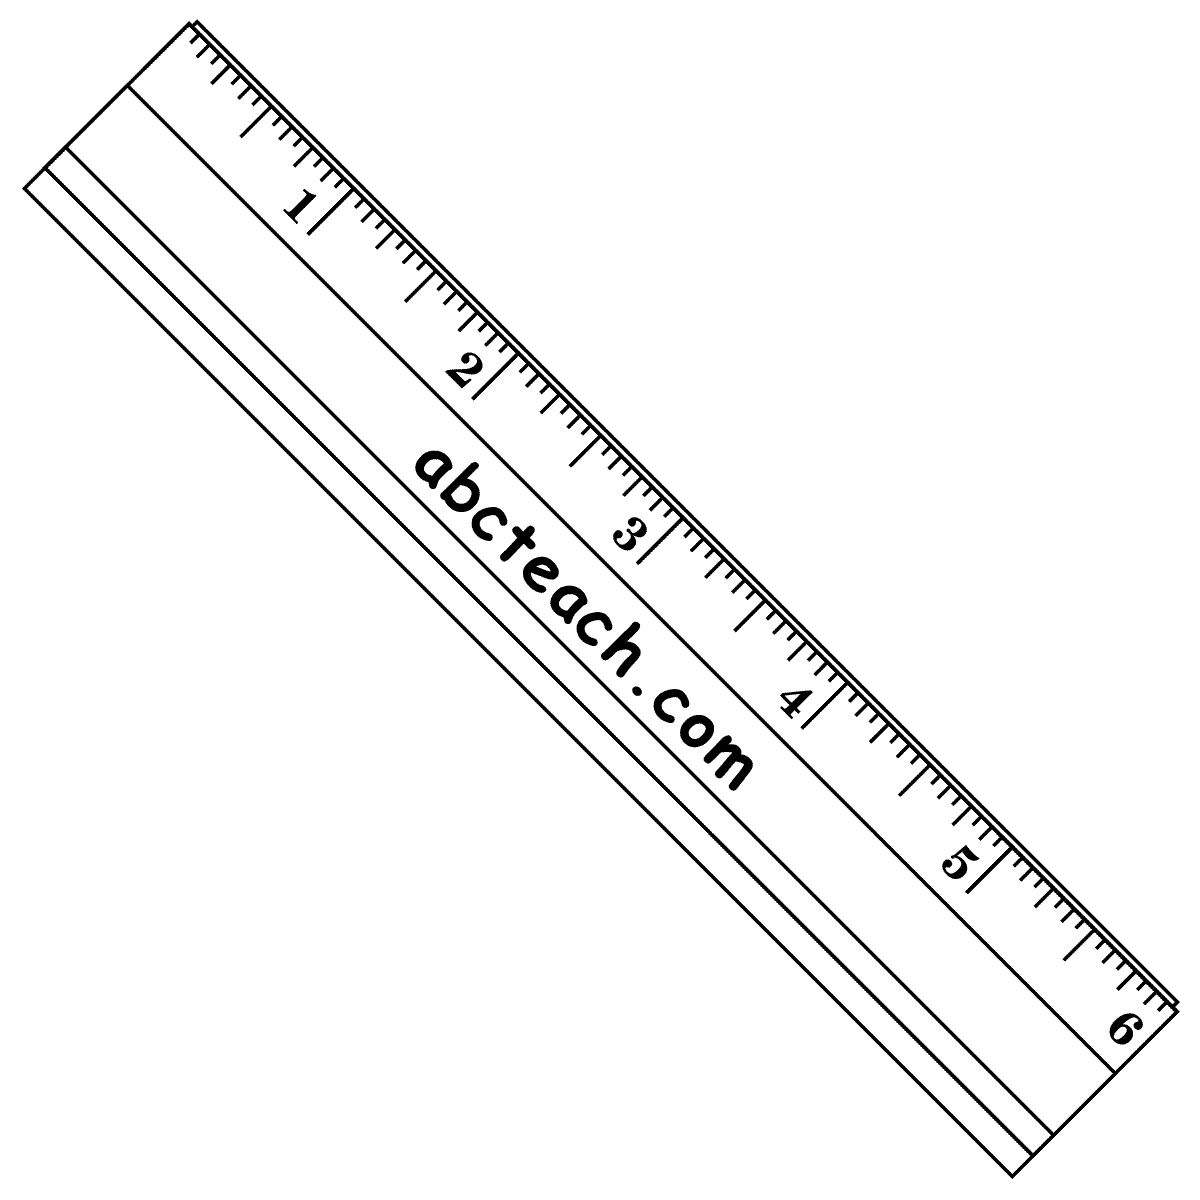 Ruler Coloring Page Cakepins Com Coloring Pages Rich Young